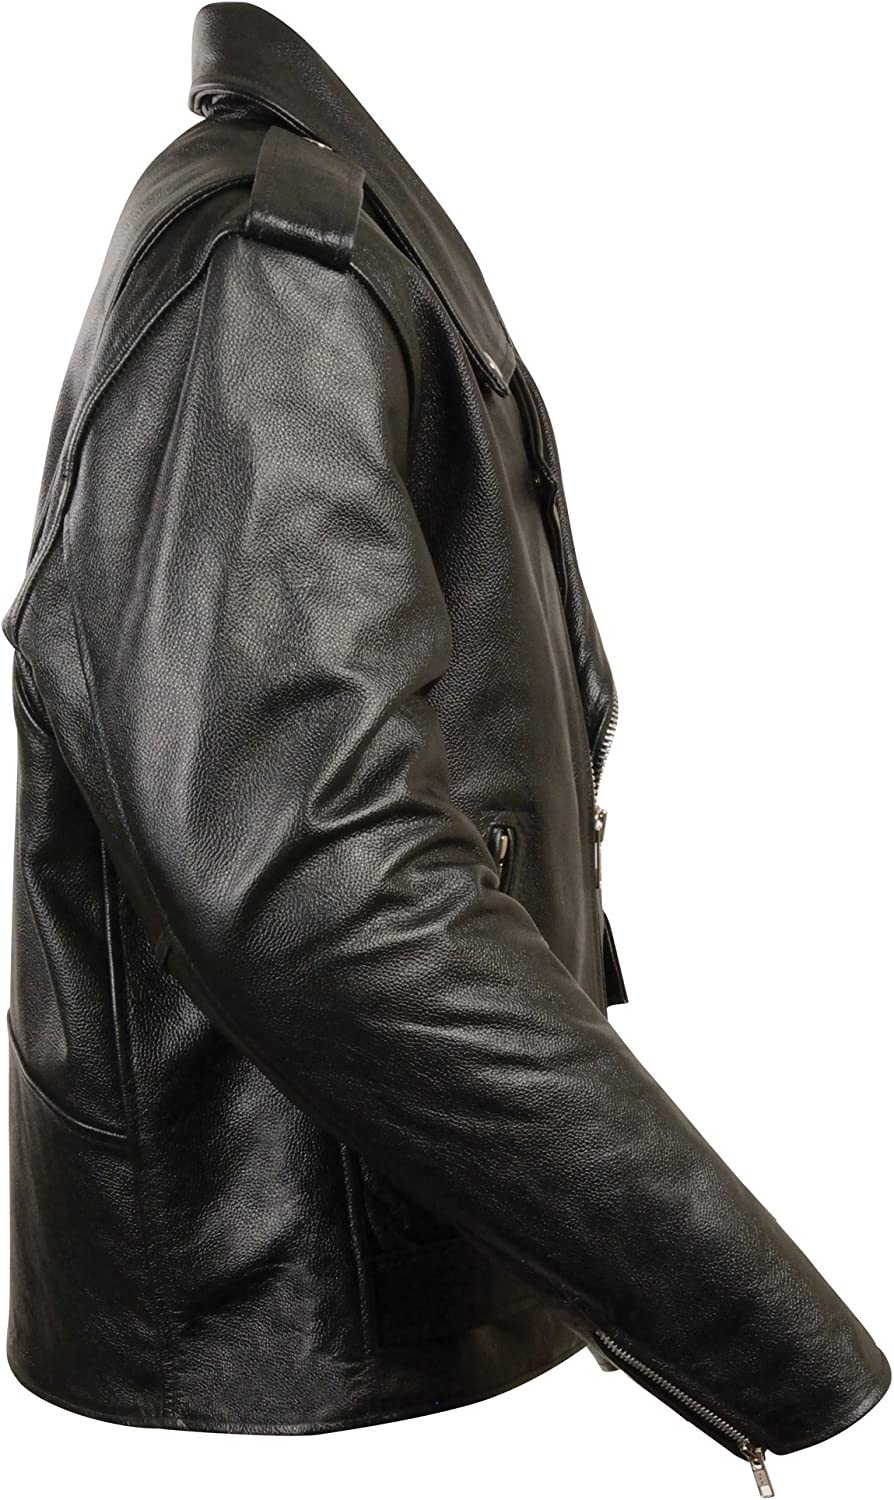 Youth Black, Size 34 Milwaukee Leather Boys Basic Motorcycle Jacket